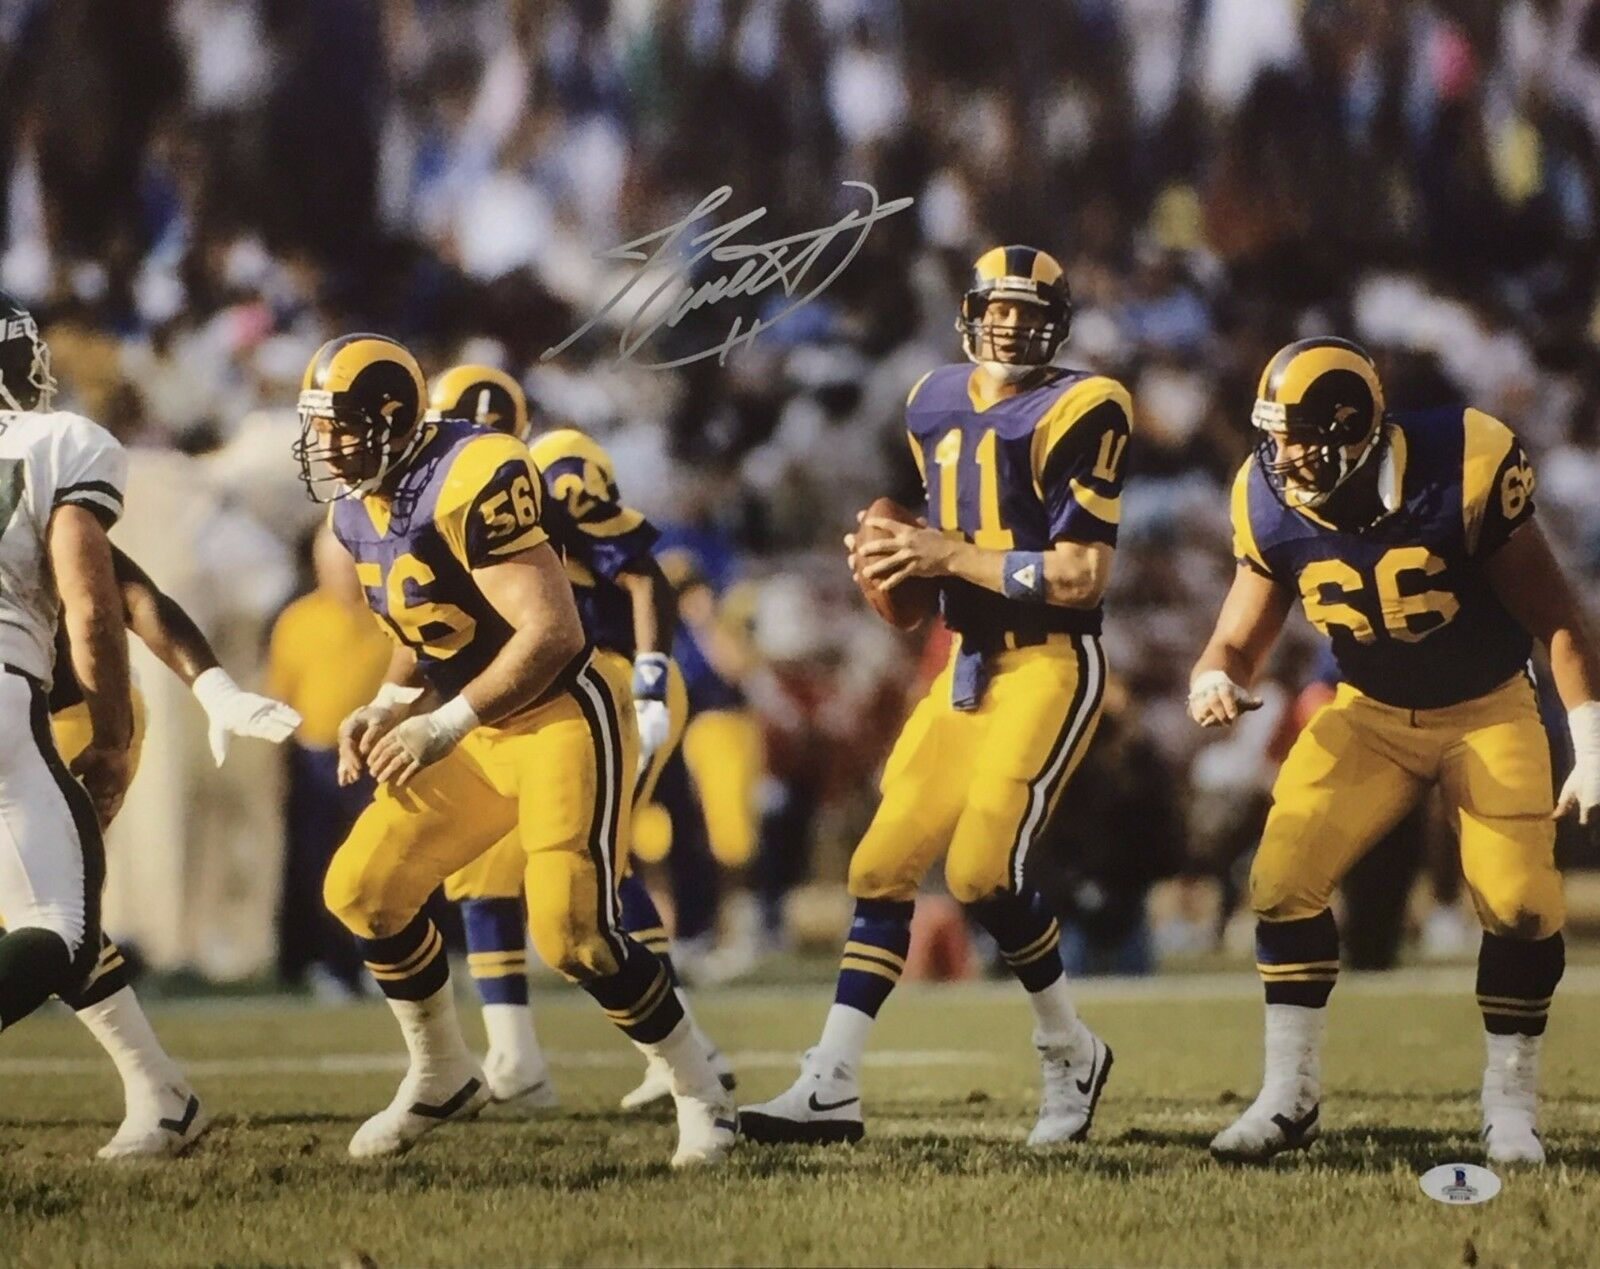 Jim Everett Signed Los Angeles Rams Football 16x20 Photo Beckett B11026